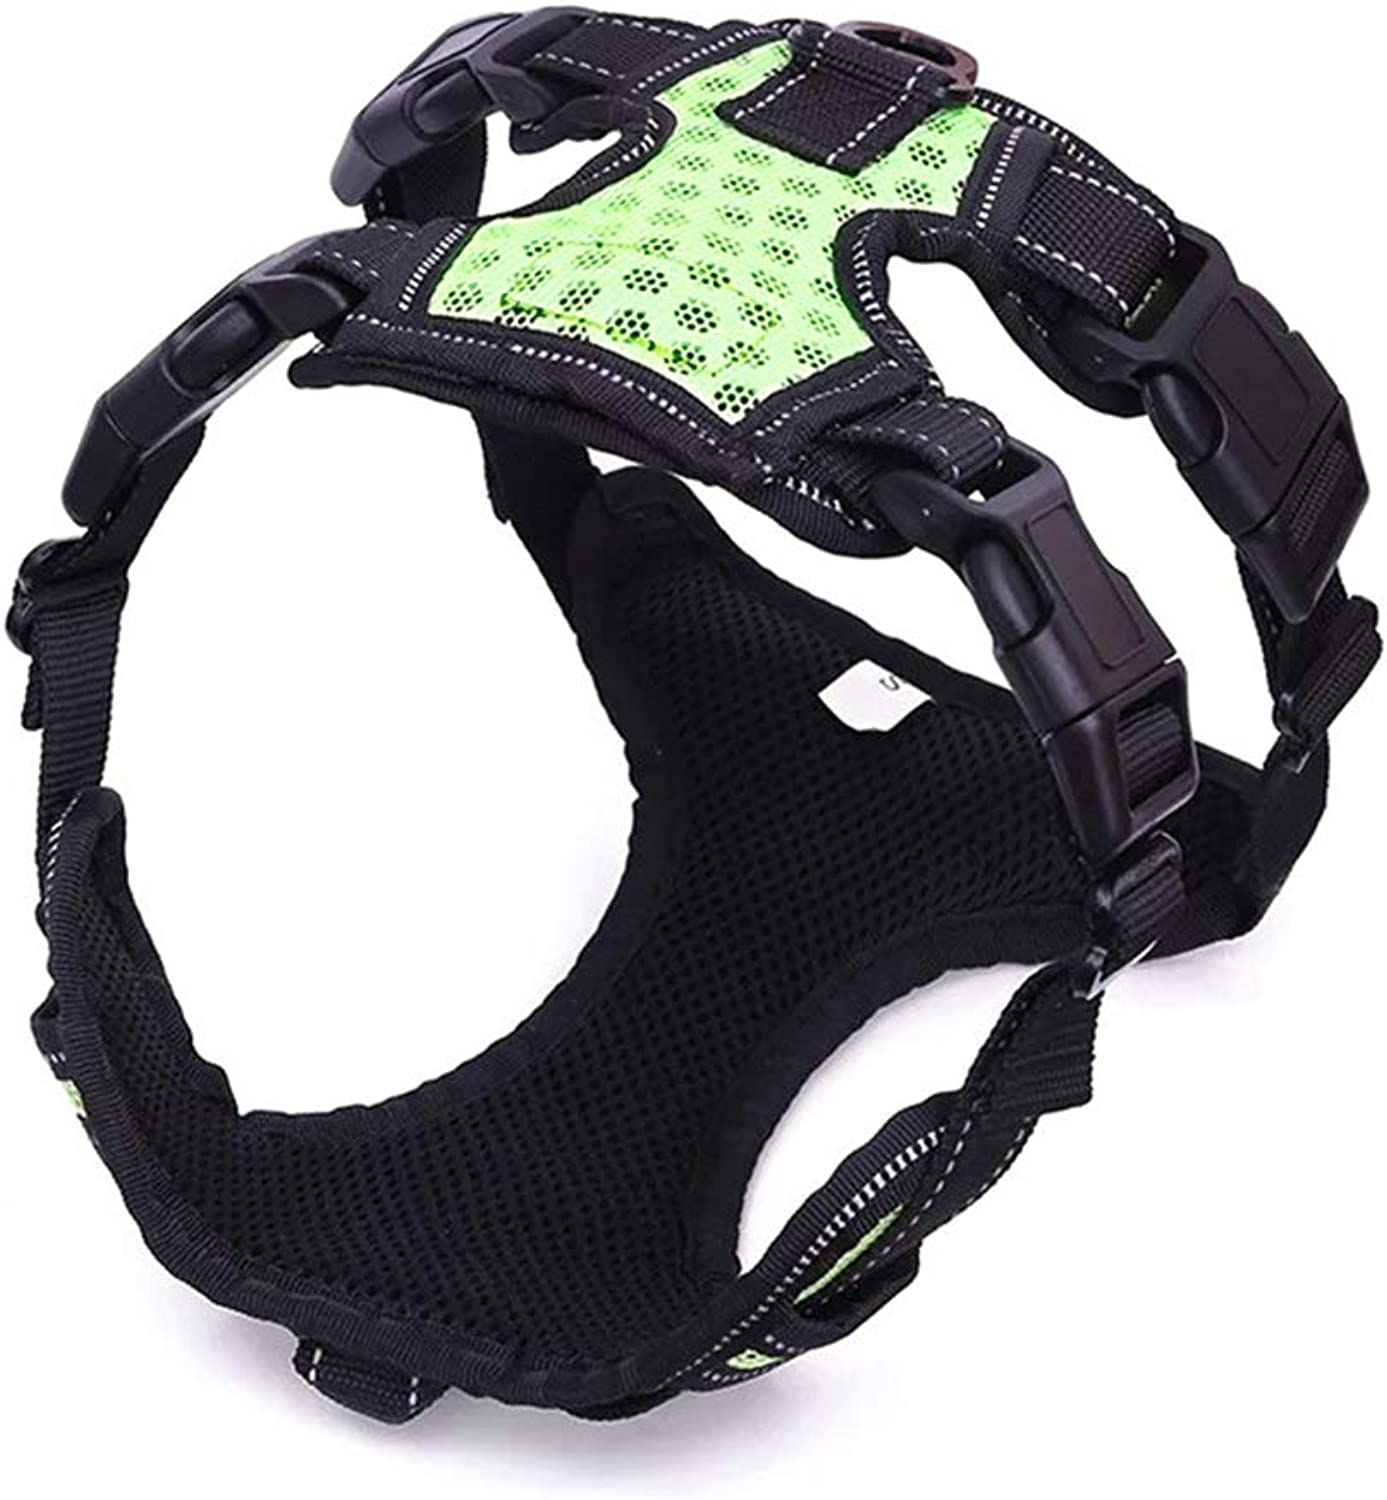 Dog Chest Strap with Traction Rope Pet Supplies ExplosionProof Punch Large Dog Pet Adjustable Comfort Breathable,Green,L